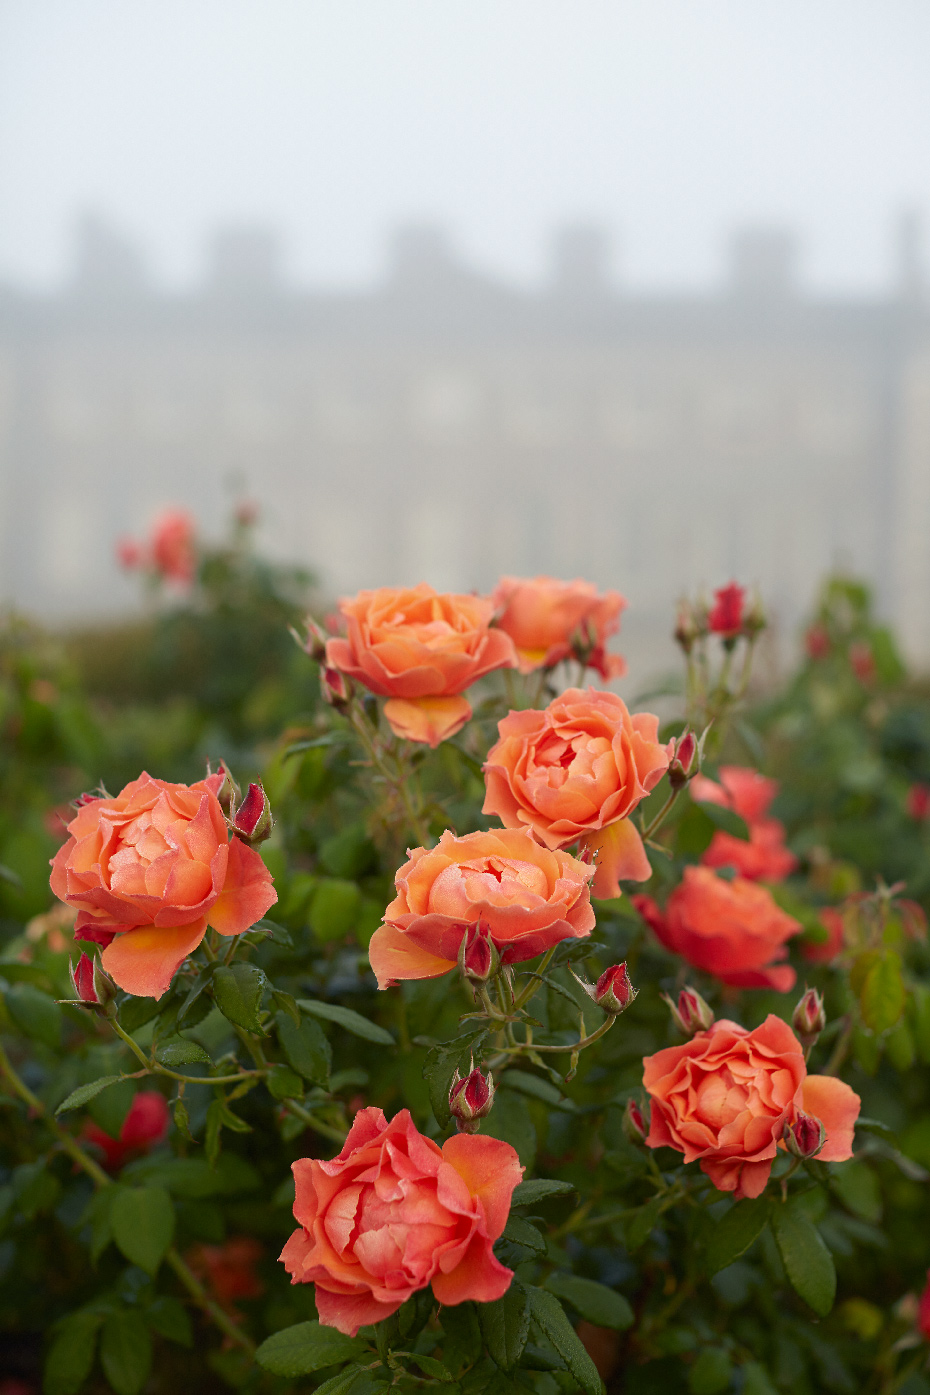 Stacey Van Berkel Photography I Carton House I coral roses in the morning fog I Kildare, Ireland